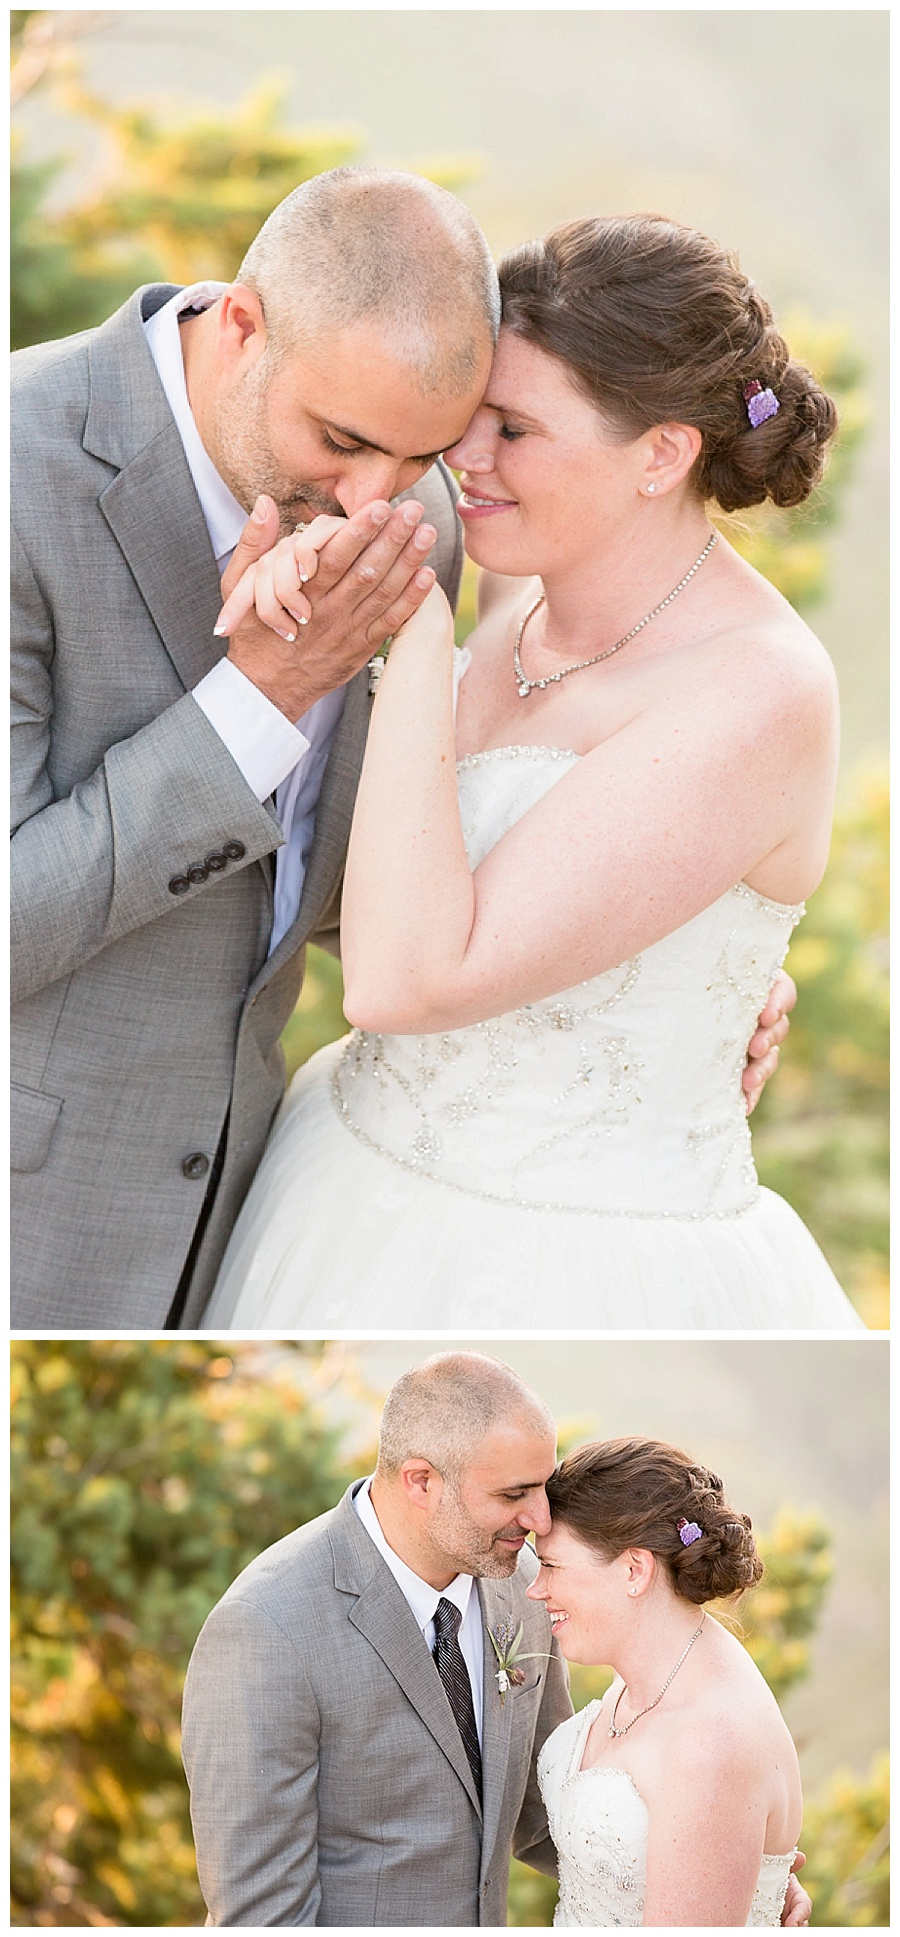 Romantic Sunset wedding photos at Boettcher Mansion